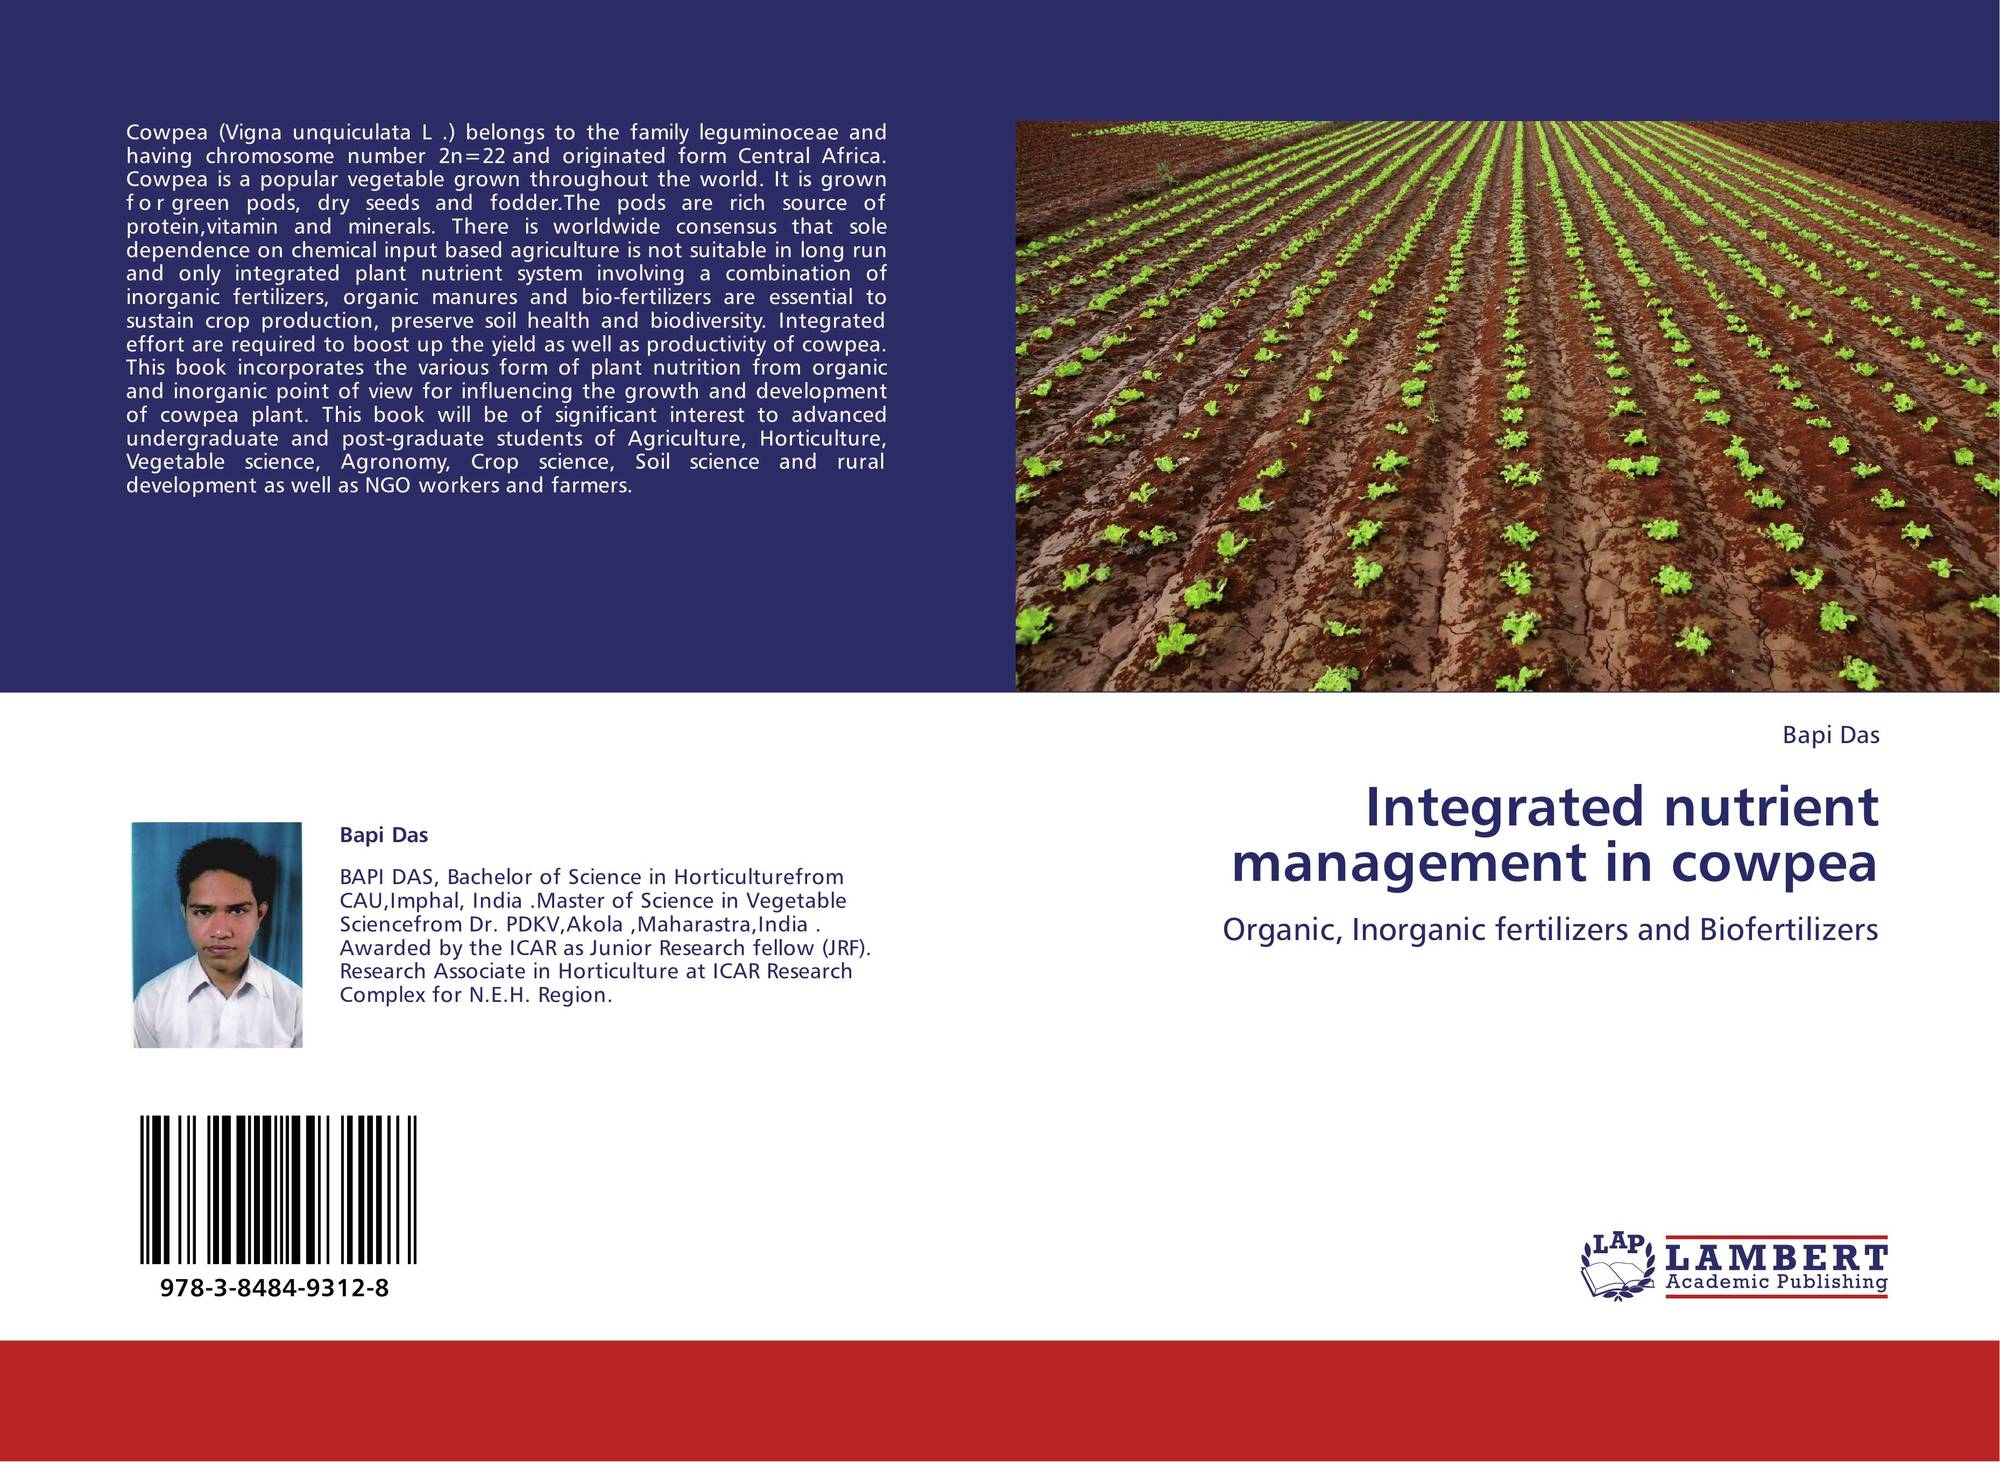 thesis on integrated weed management in cowpea Results 33 - 74  nutrient management on growth, yield and quality of seed in cowpea (vigna  no  part of the thesis has been submitted for any other degree or diploma  of  ground cover, plant residue, nitrogen fixation and suppressing weed.